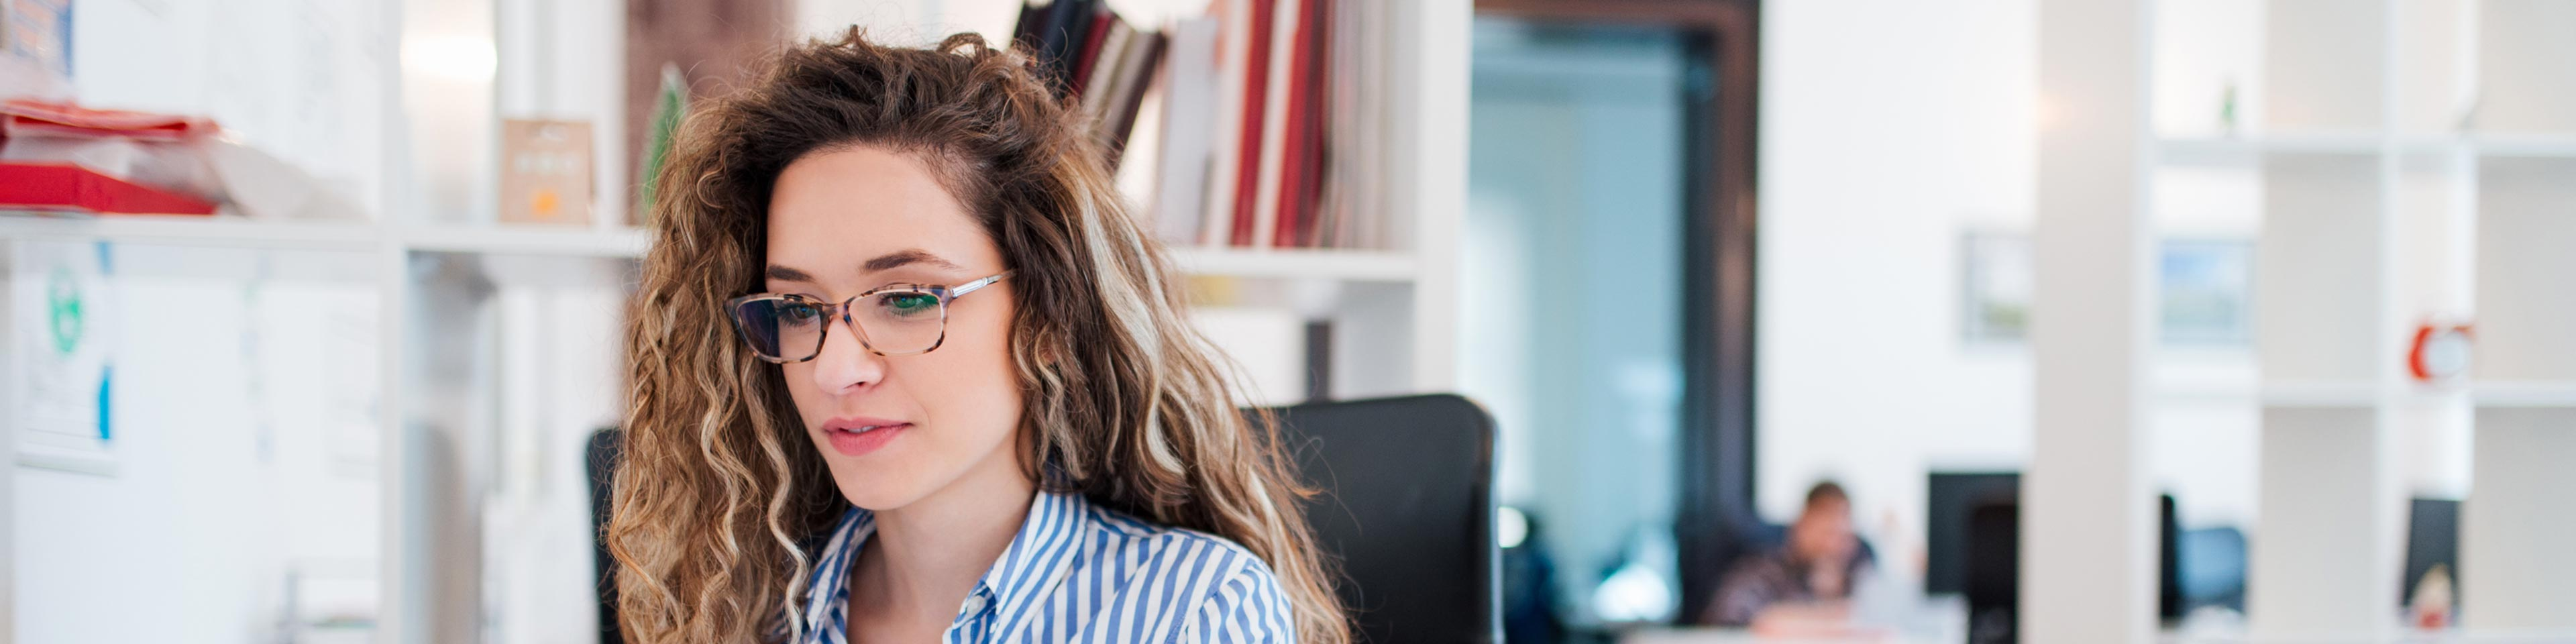 woman with curly hair reviewing employee benefits